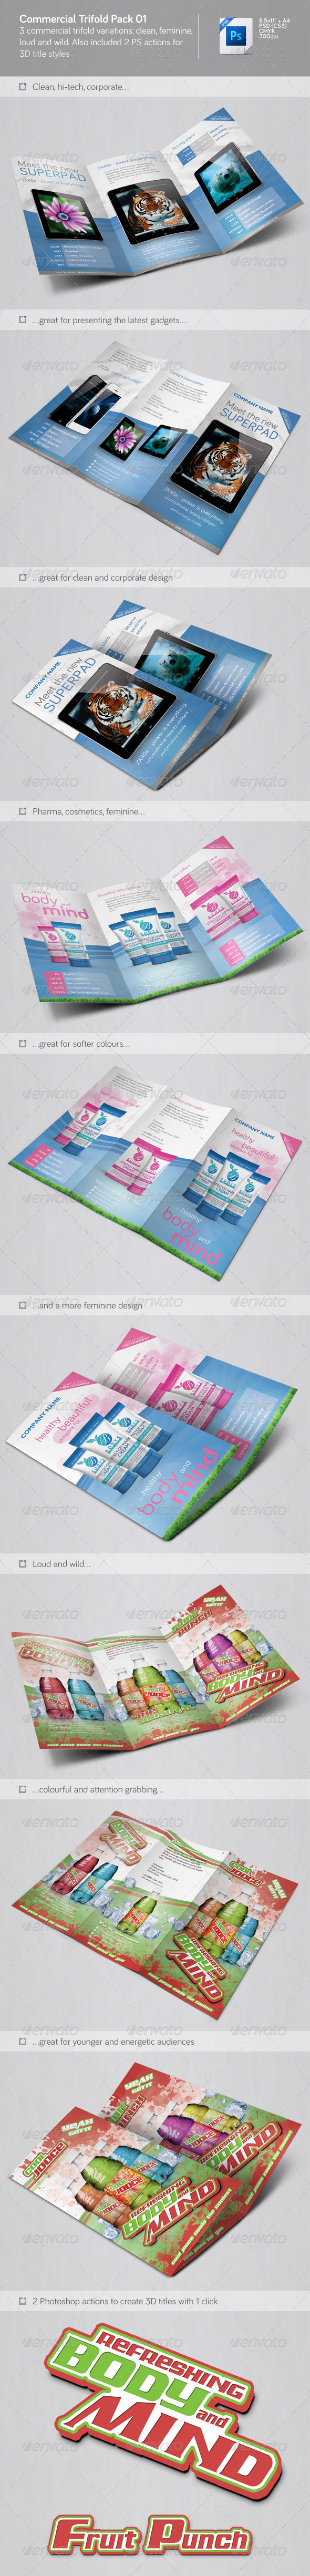 Commercial trifolds pack 01 - Brochures Print Templates